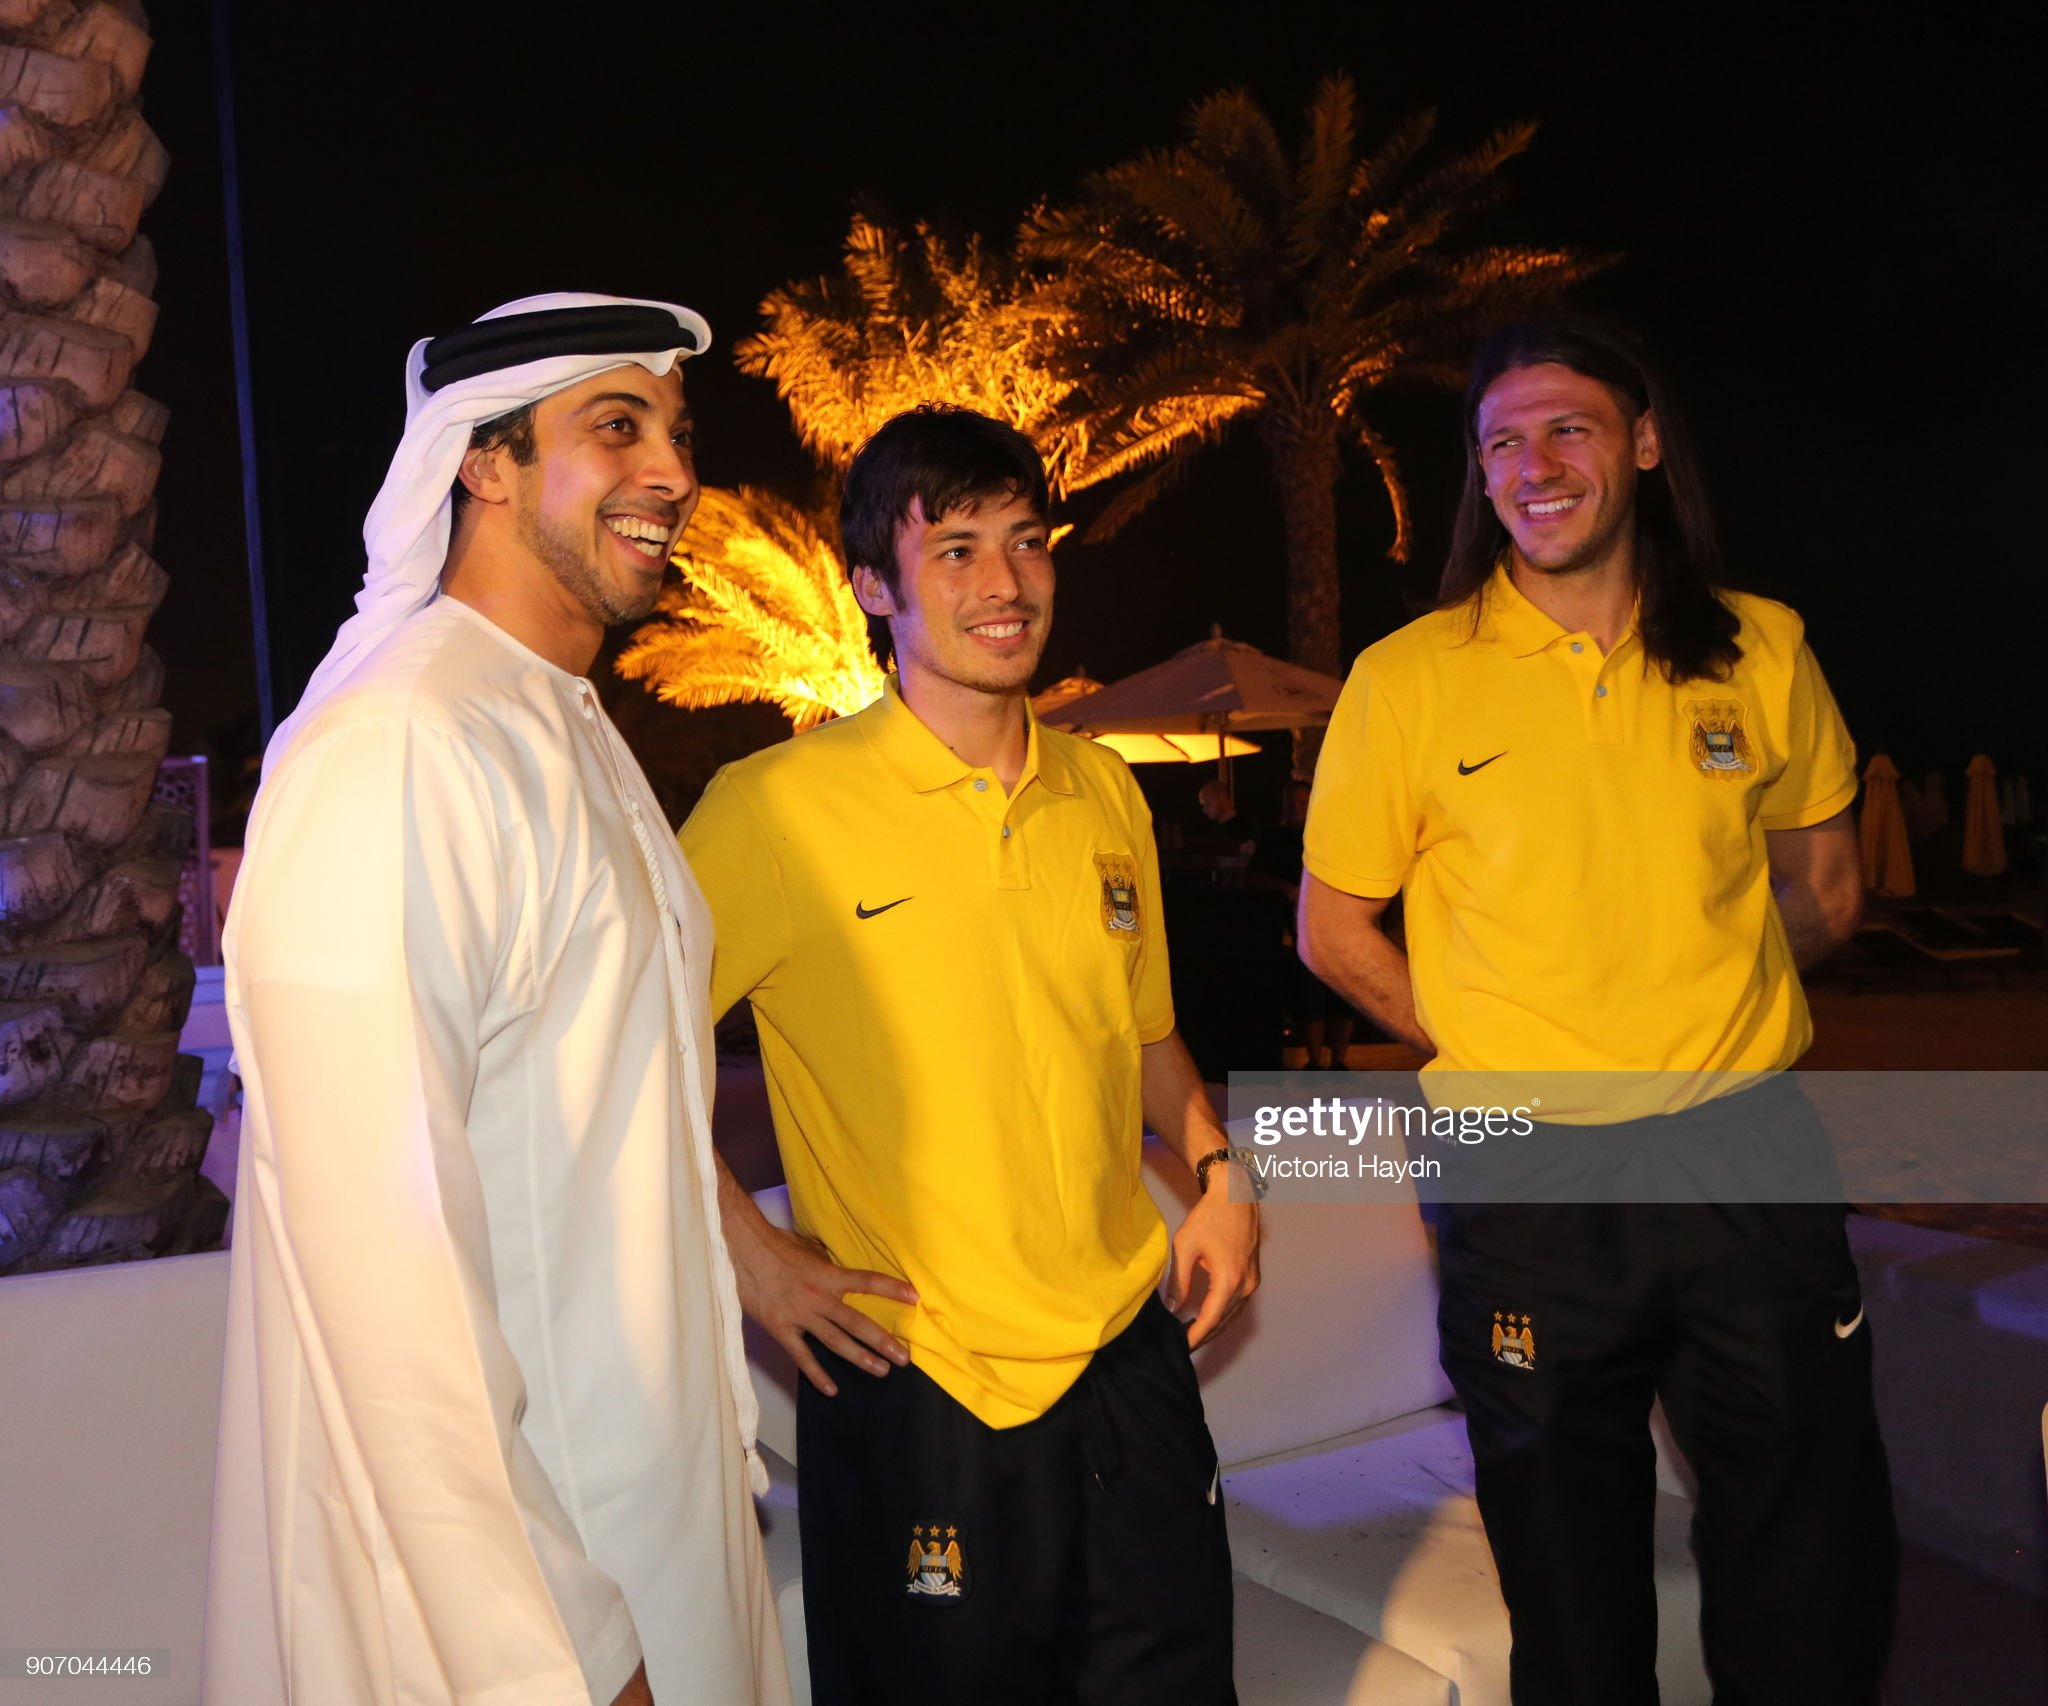 https://media.gettyimages.com/photos/manchester-city-post-season-tour-day-two-abu-dhabi-manchester-citys-picture-id907044446?s=2048x2048